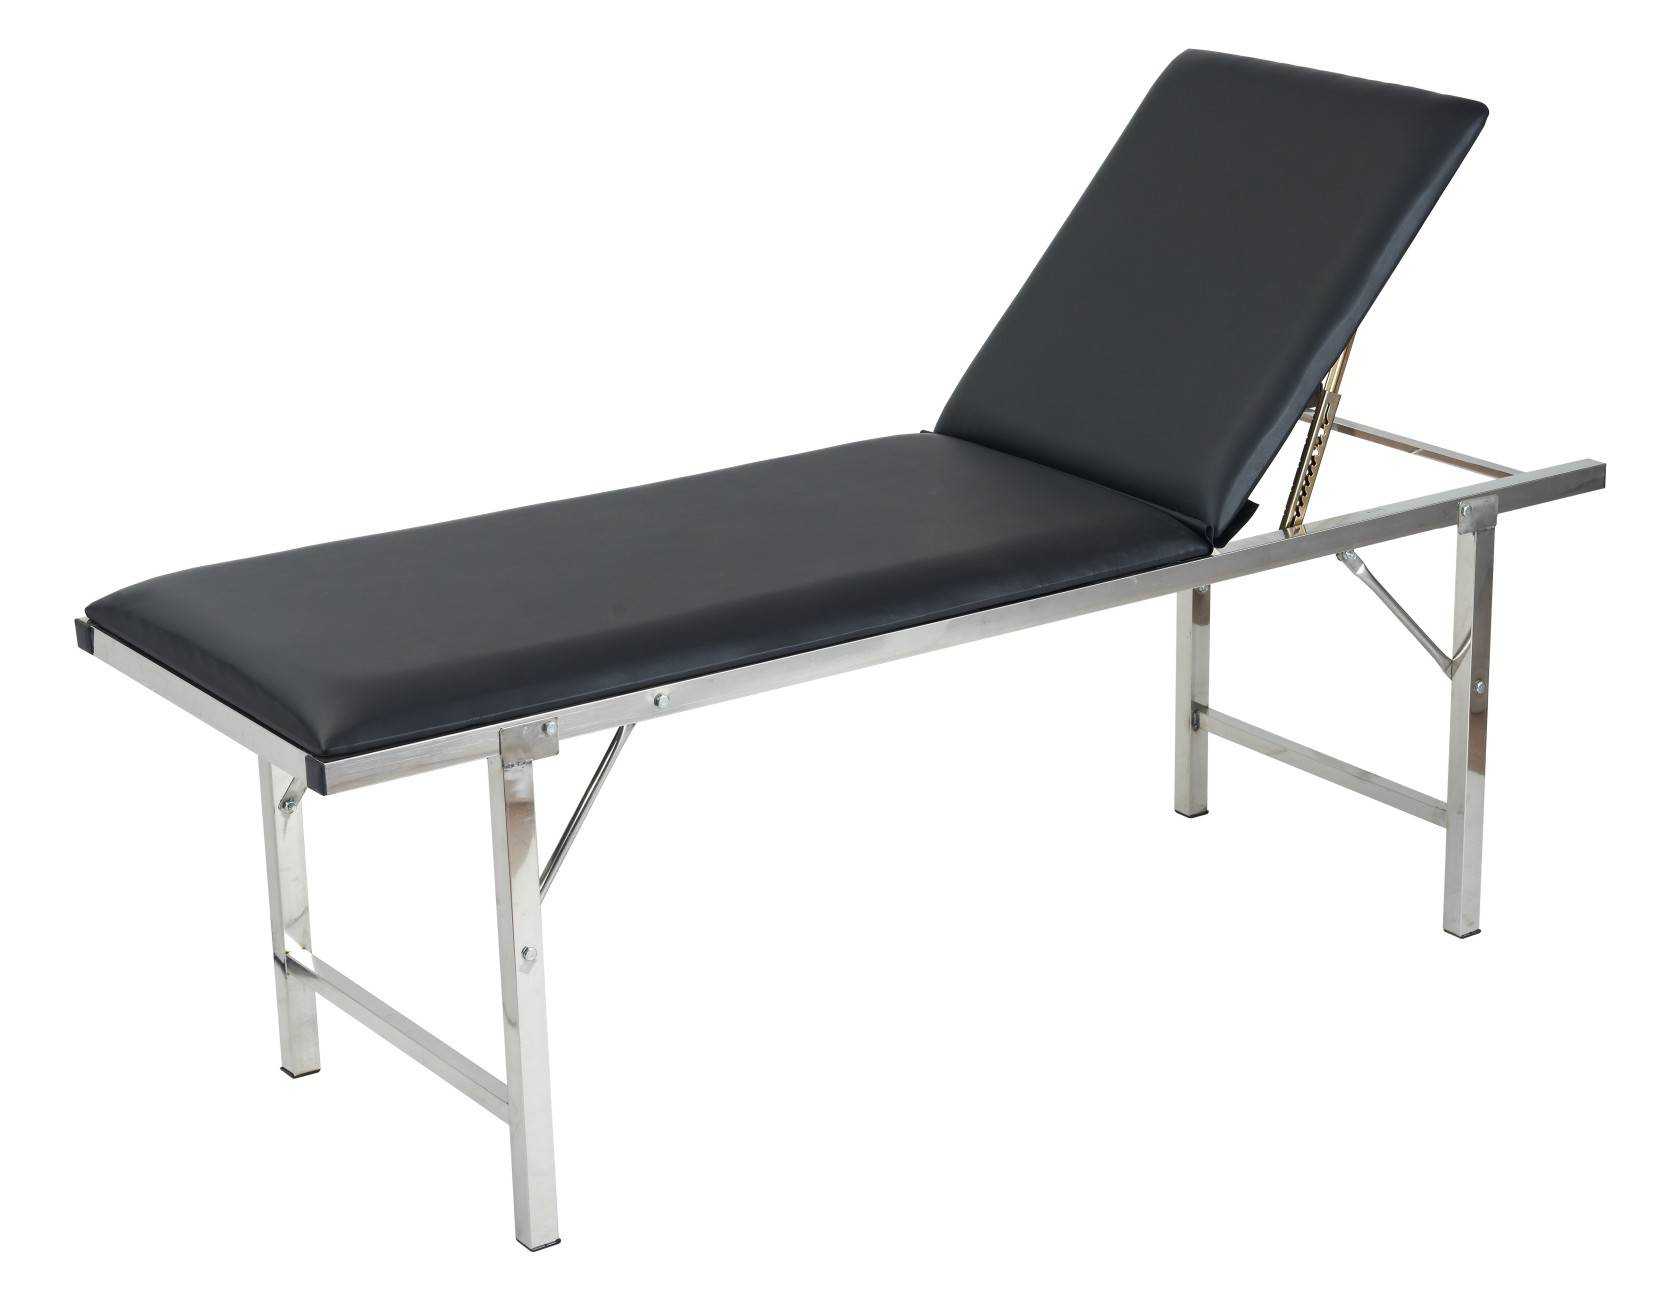 Massage table(Stainless steel),examination bed of gynaecology